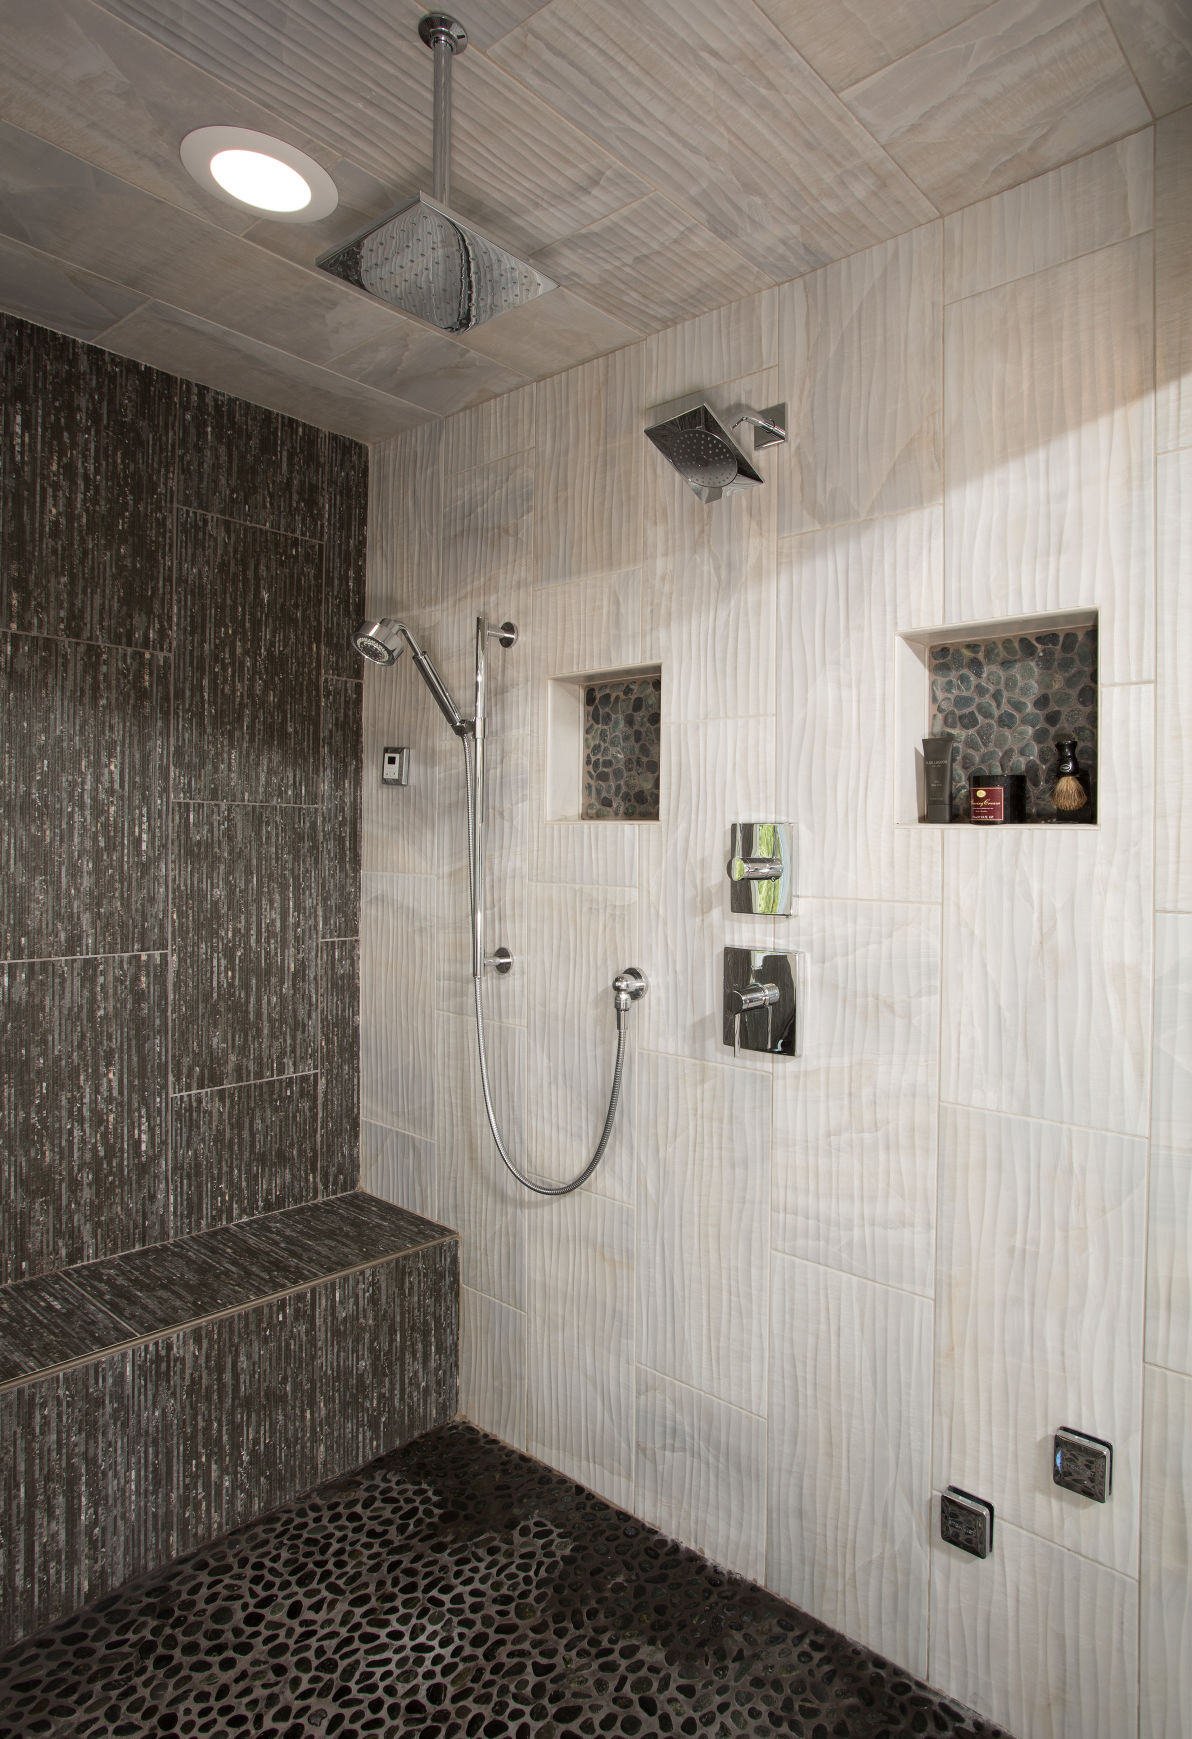 The Showeru0027s Inside Wall Is Finished In Contrasting Light And Stone Tiles  With A Softly Accentuated Moire Pattern; There Are Three Shower Heads And A  Long ...